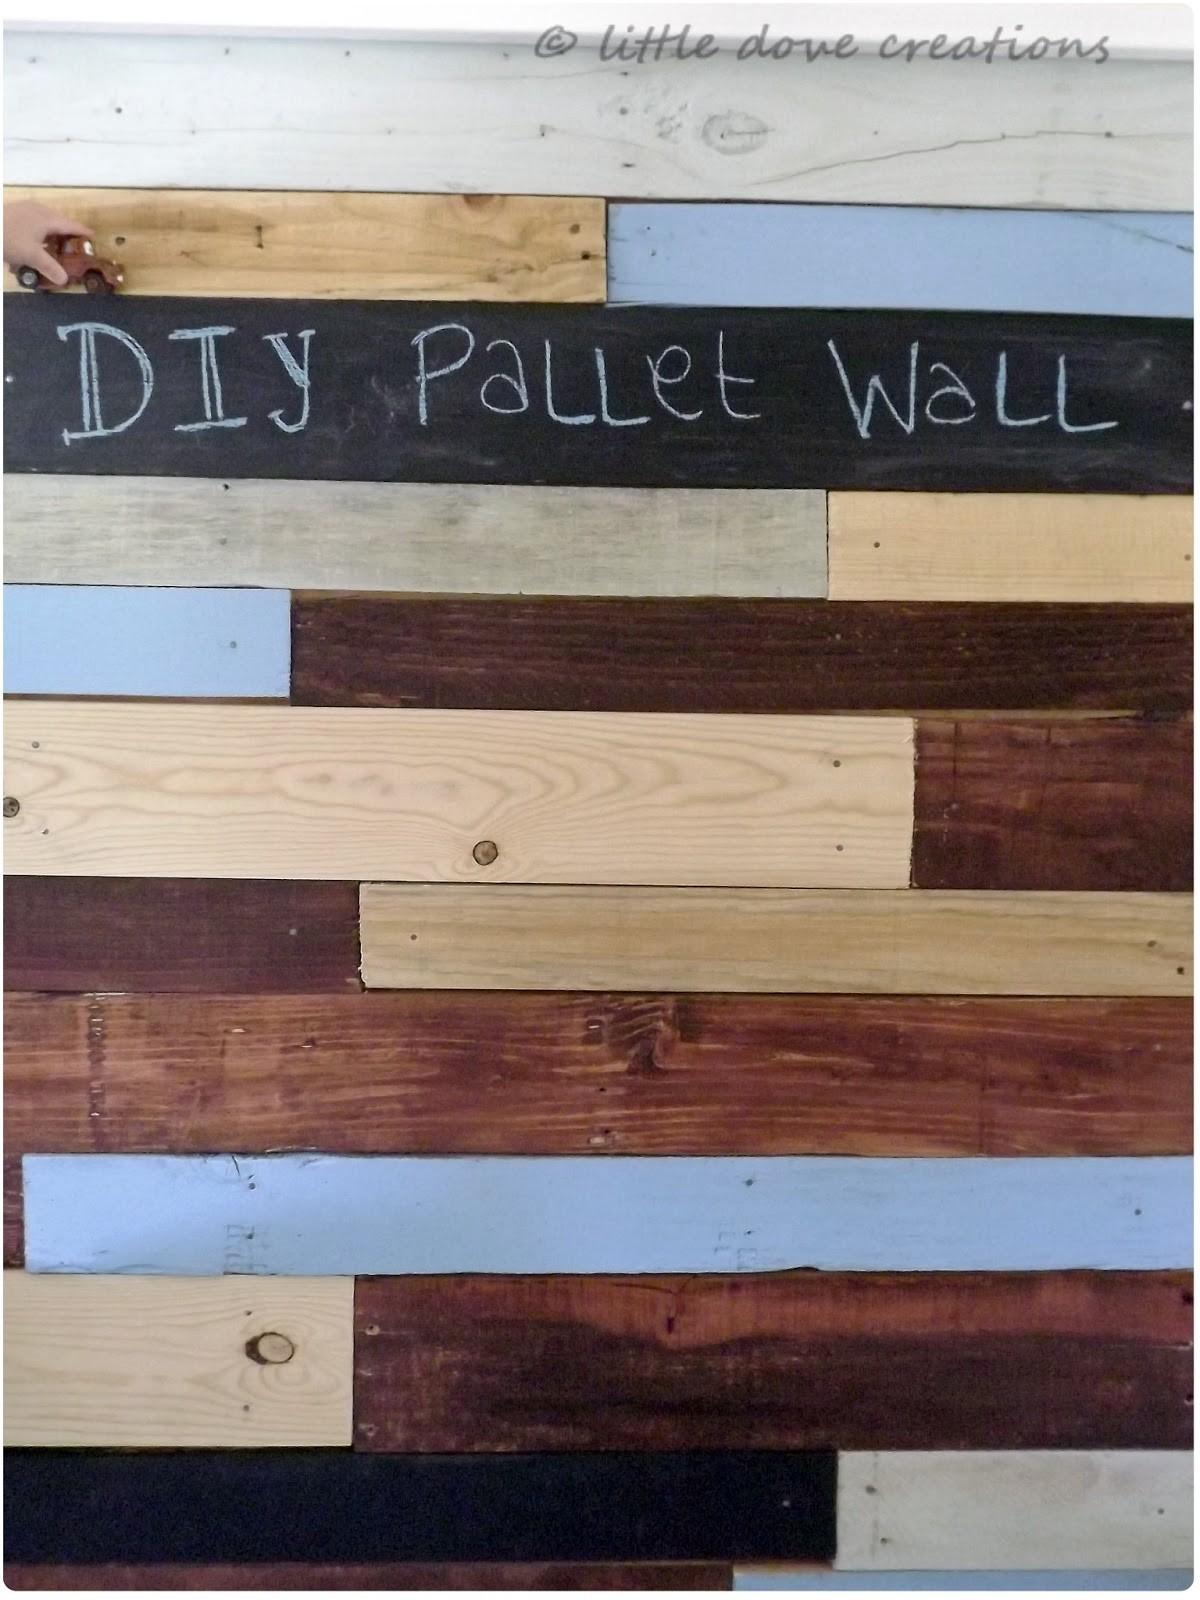 Little Dove Creations Diy Pallet Wall